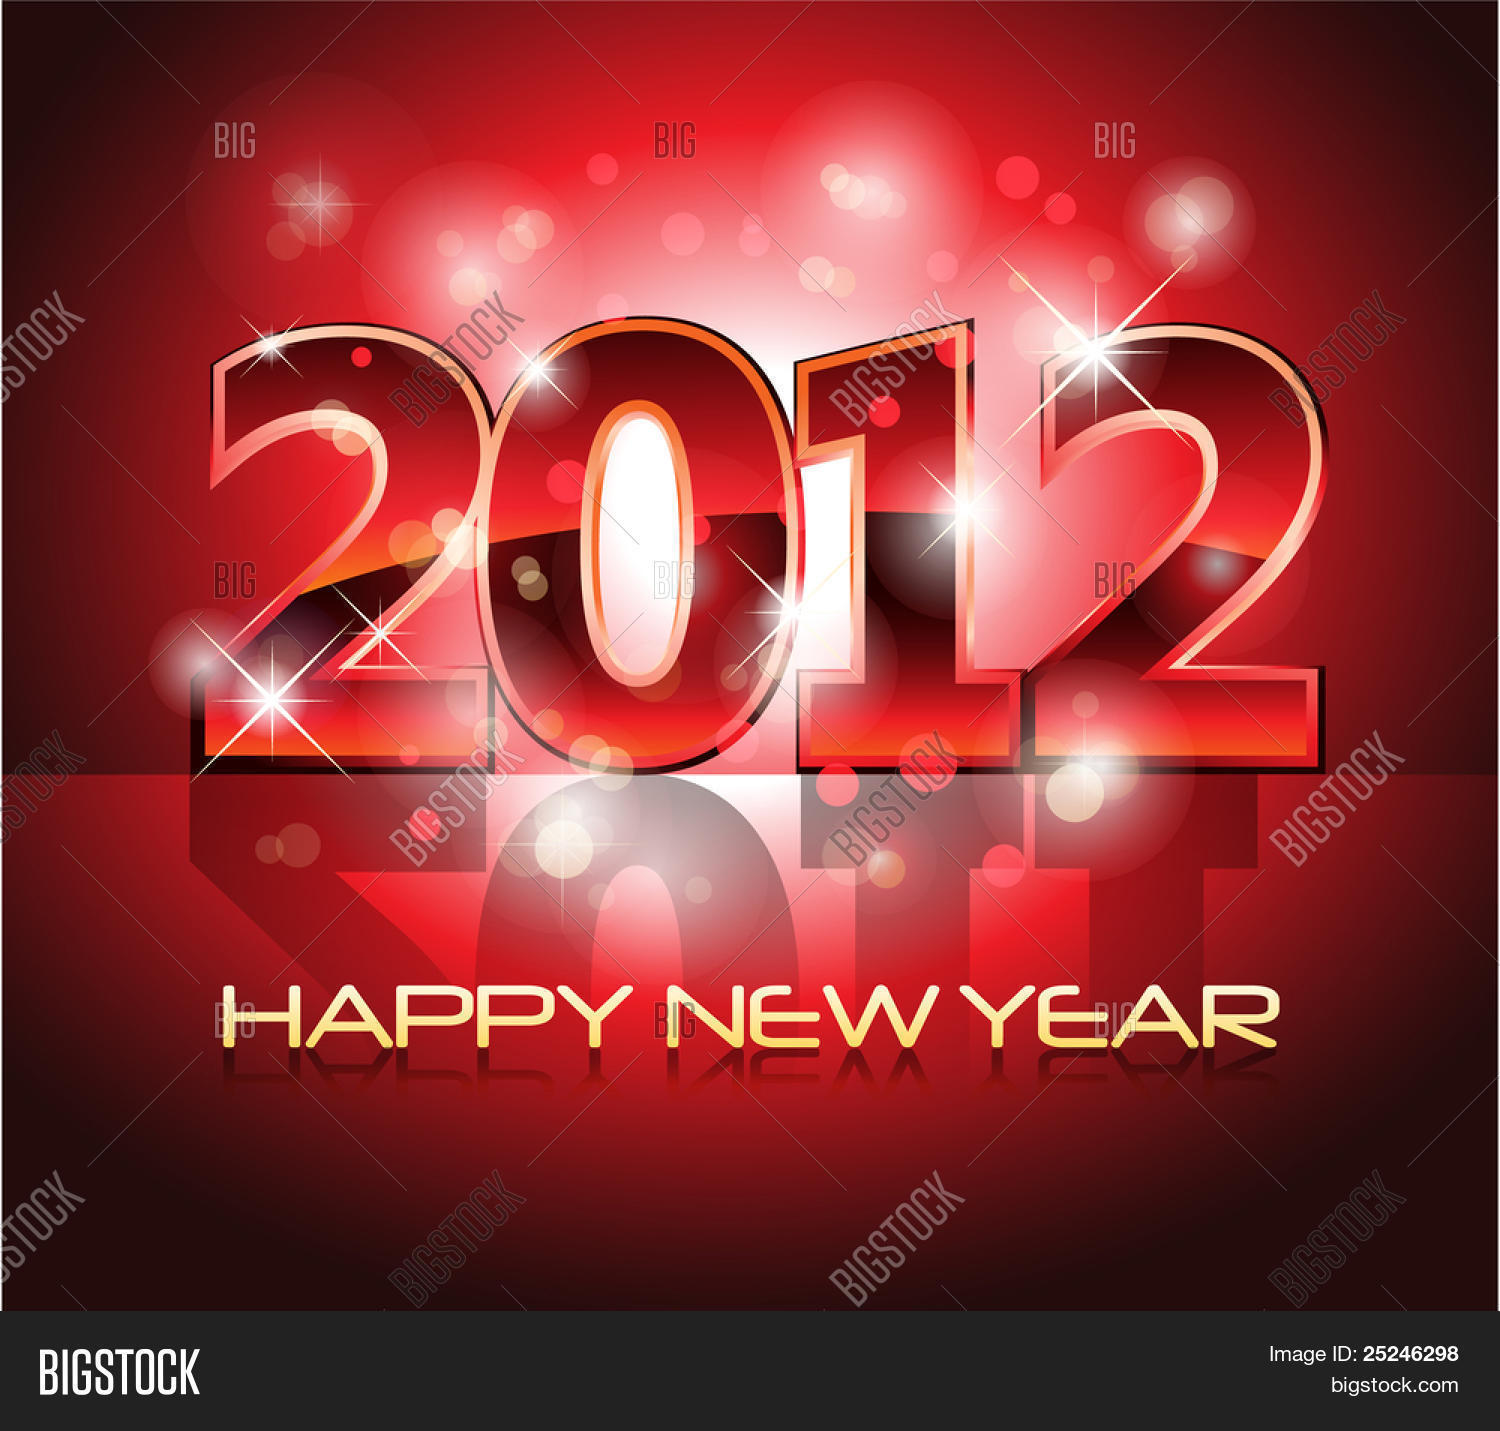 2012 year,background,banner,bright,card,christmas,decoration,decorative,eve,flash,greeting,happy,happy new year,holiday,illustration,invitation,lights,new,new year,new year background,new year party,new years,new years eve,new years eve party,party,red,year